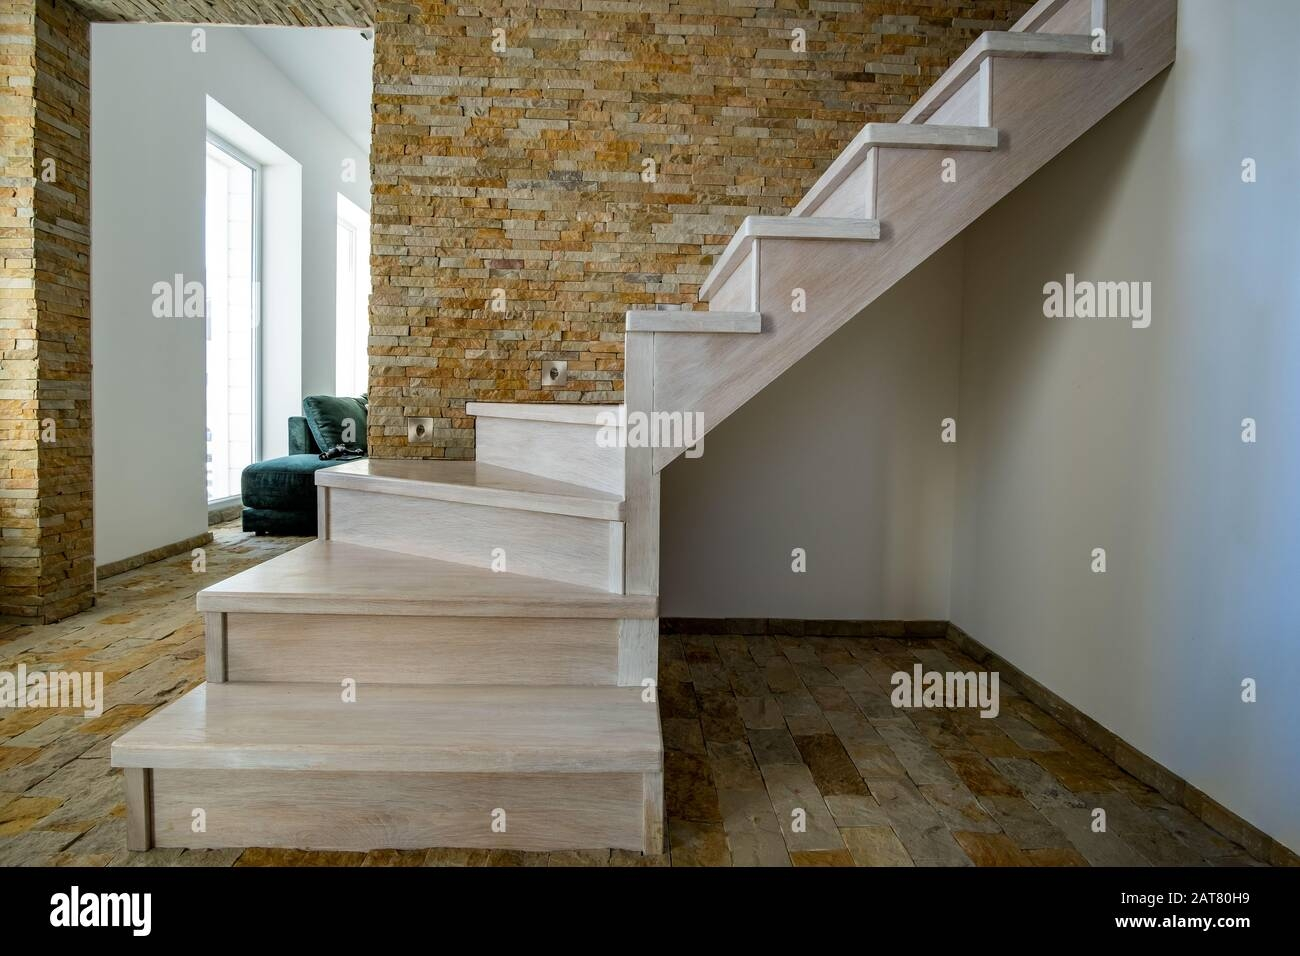 Stylish Wooden Contemporary Staircase Inside Loft House Interior | Staircase Inside House Design | Spiral Stair Case | Stair Railing | Modern Staircase Ideas | Steel | Staircase Makeover